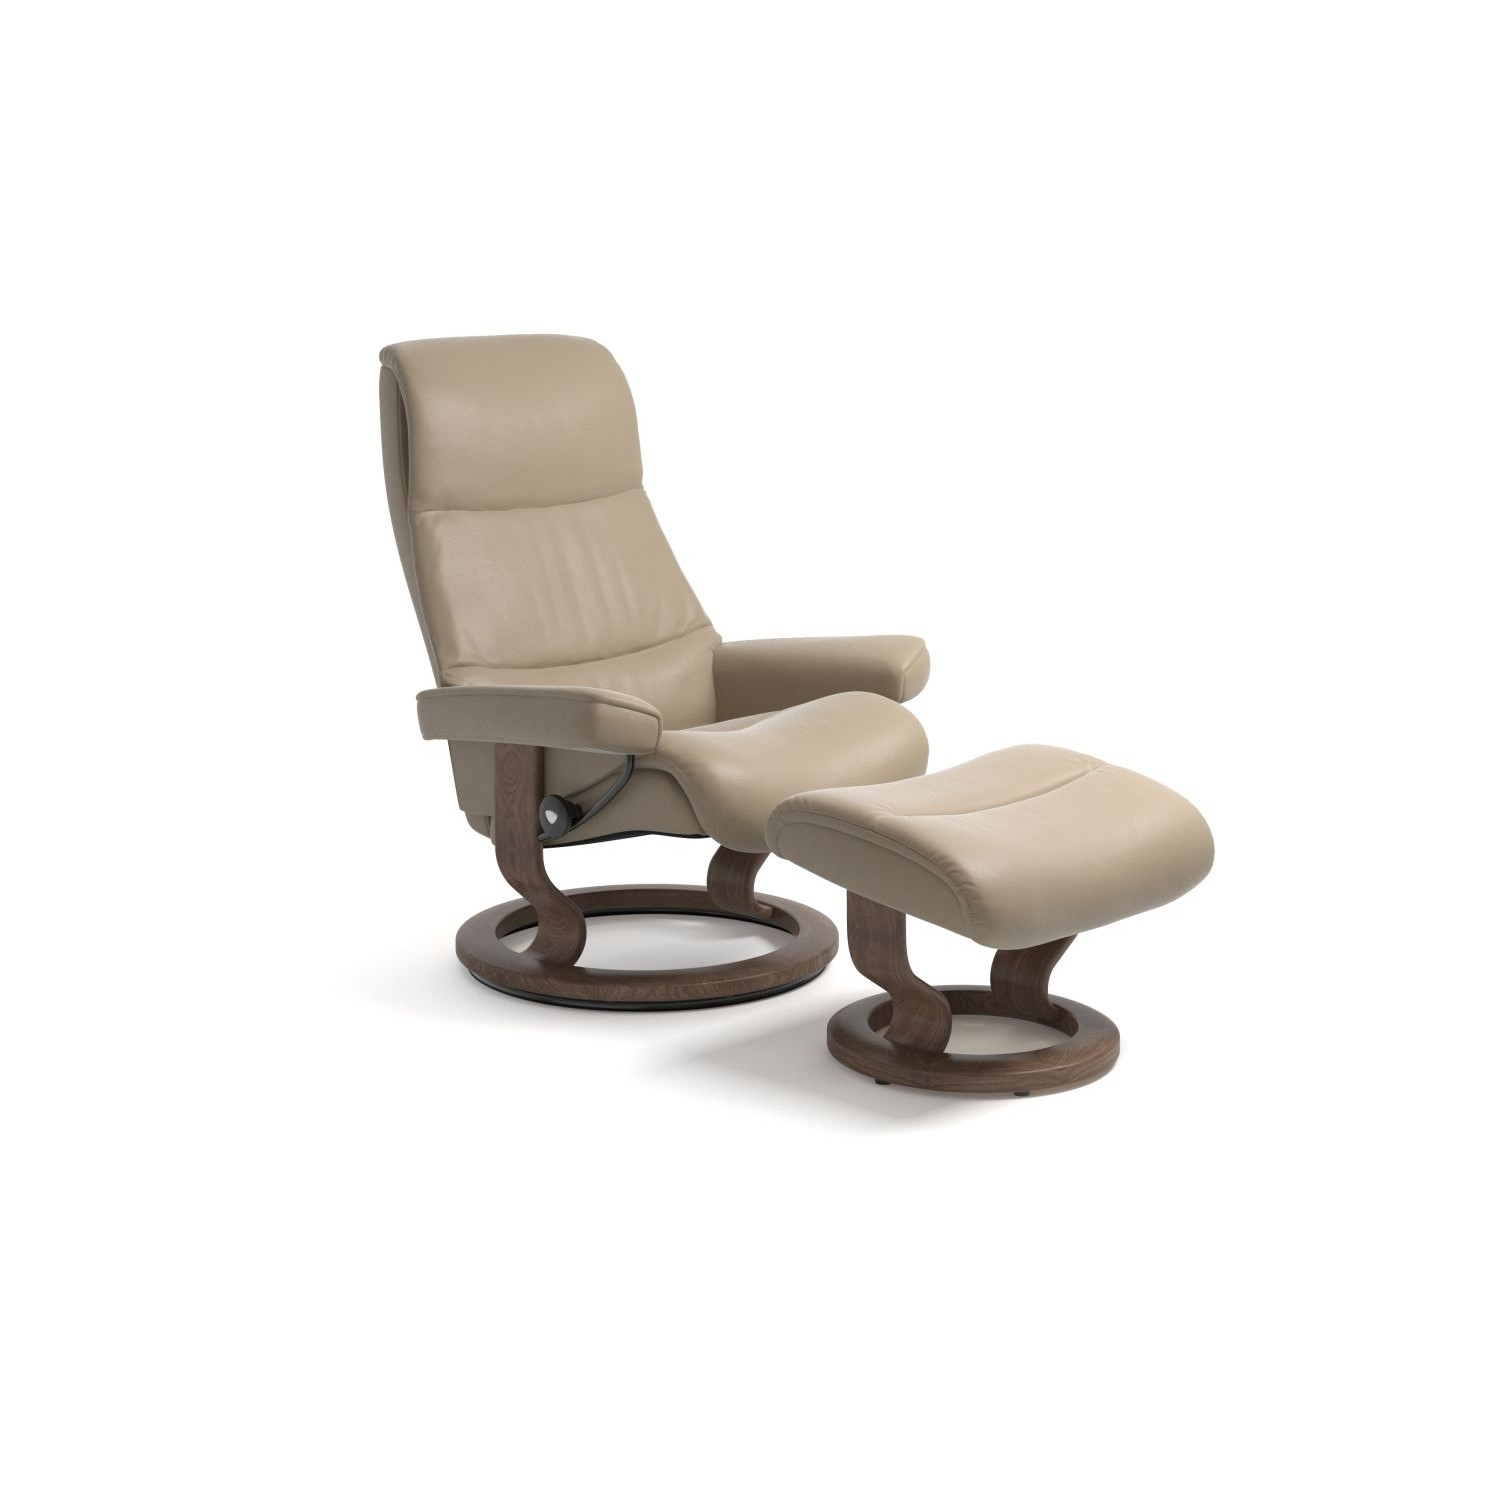 stressless chair review uk white wishbone view large with stool